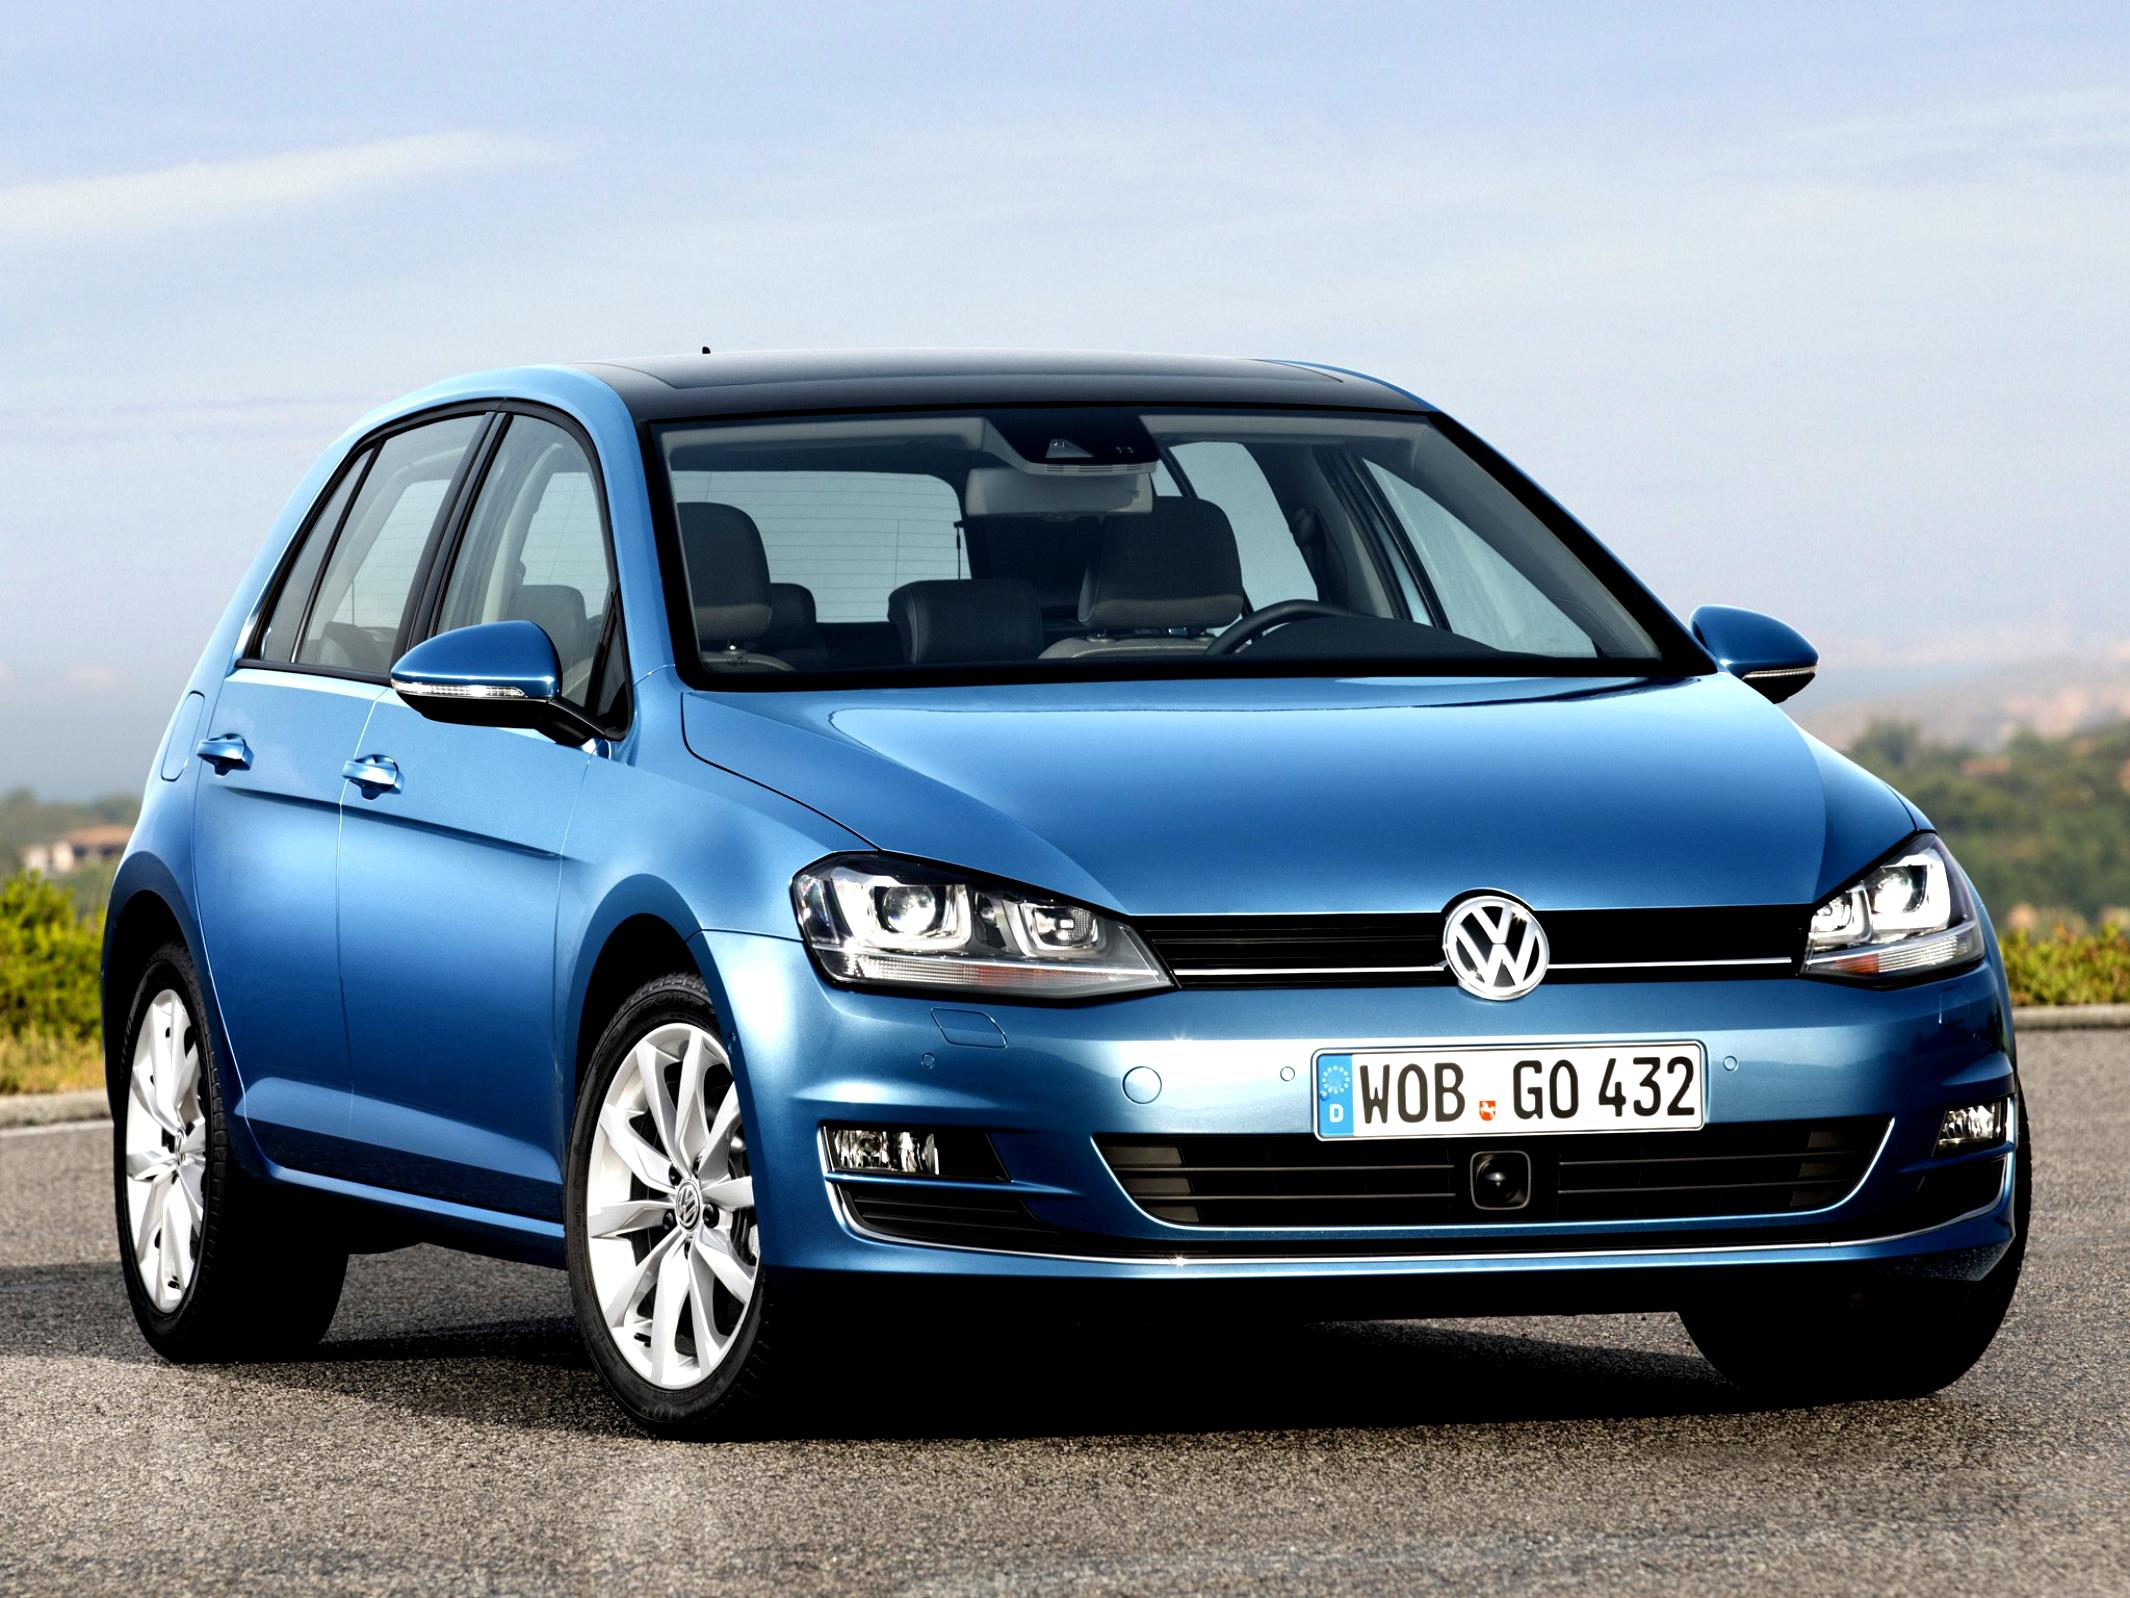 Volkswagen Golf VII 5 Doors 2012 #12